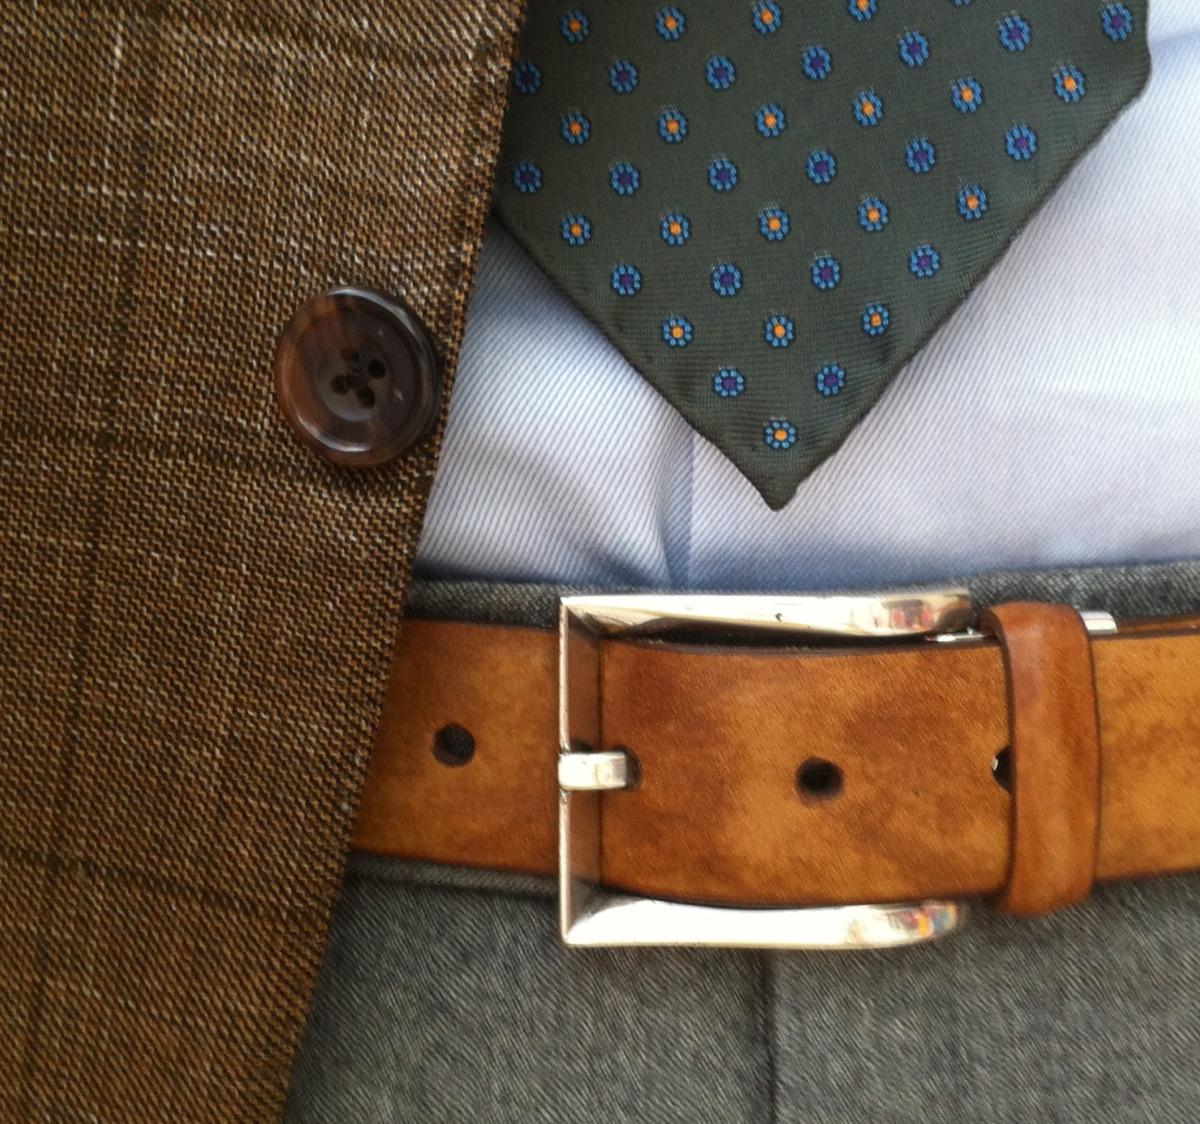 Details, 1.   Museum calf belt and an untipped tie.